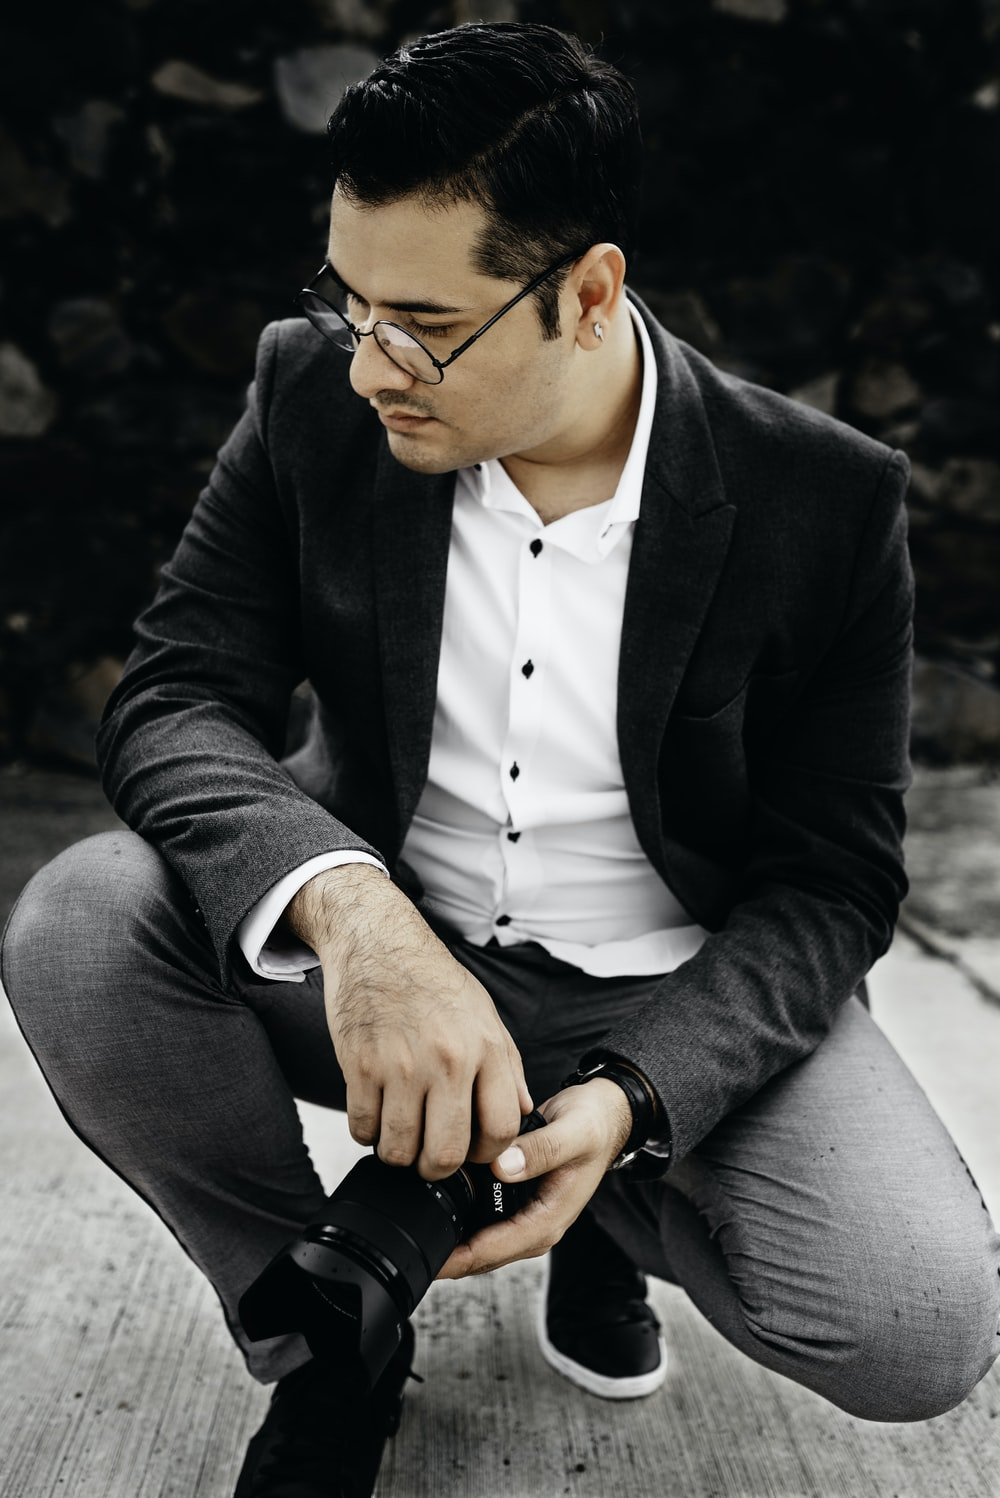 man in black suit jacket and gray dress pants sitting on gray concrete bench during daytime